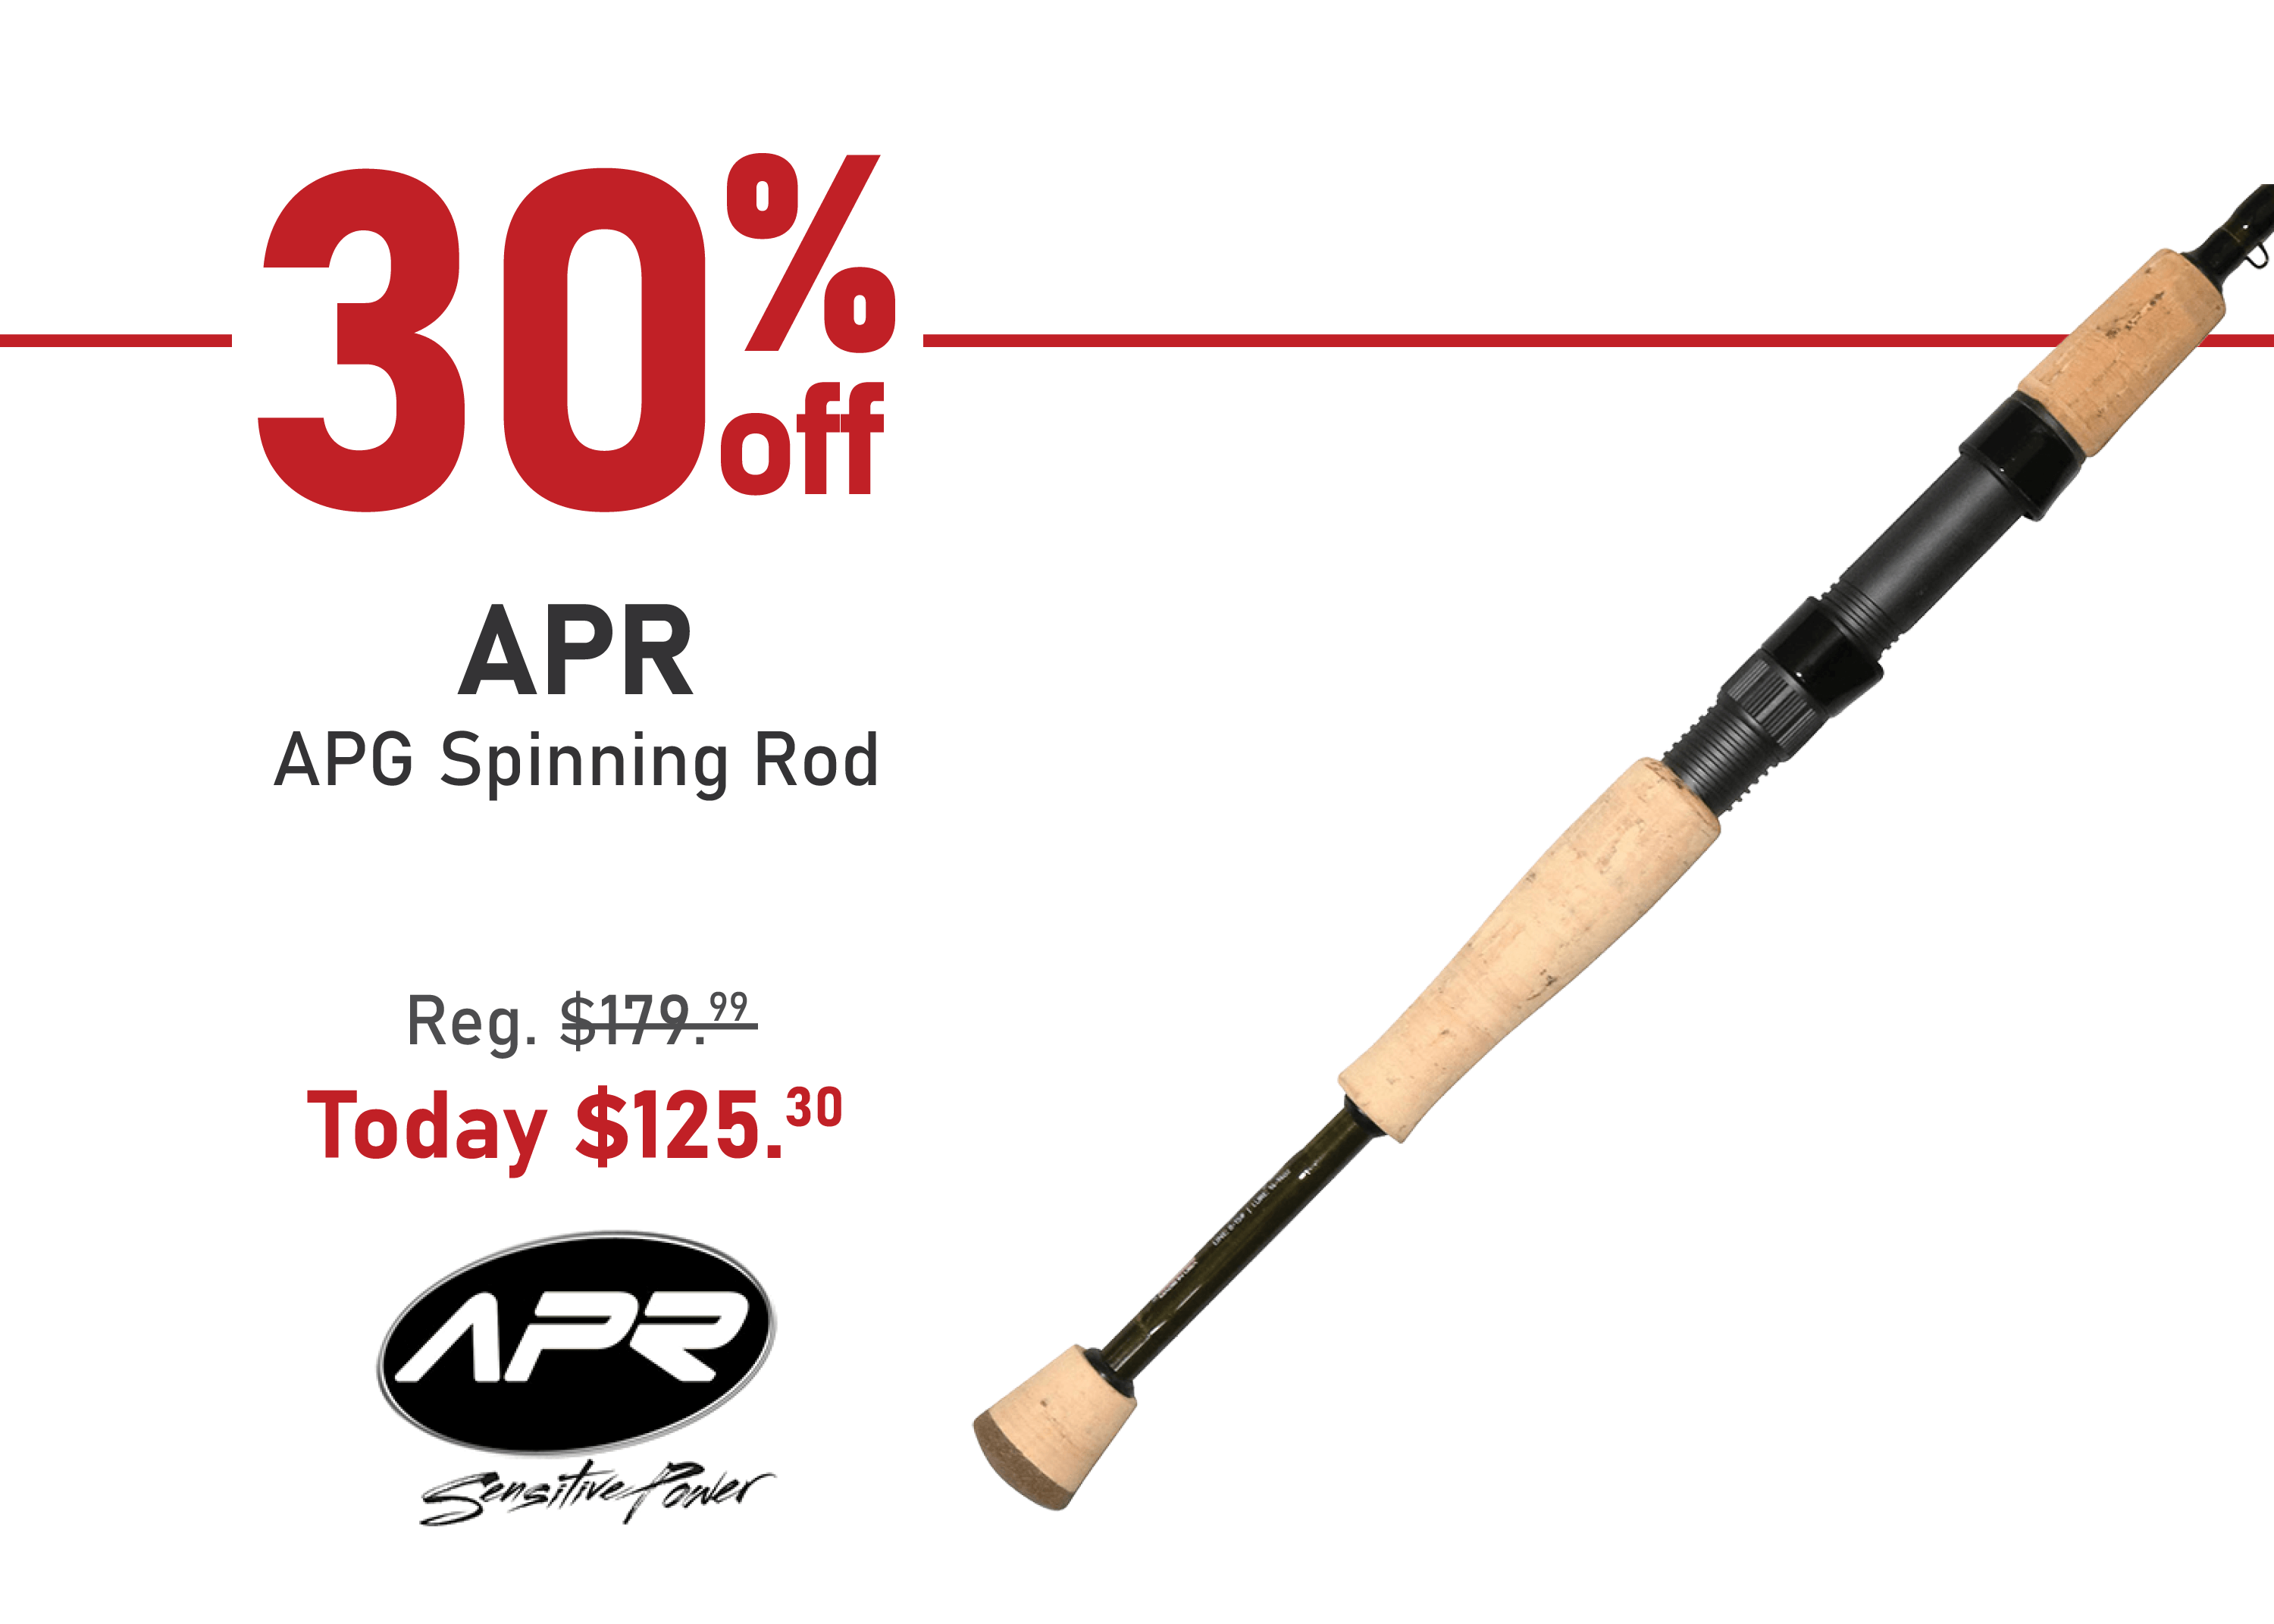 Save 30% on the APR APG Spinning Rod